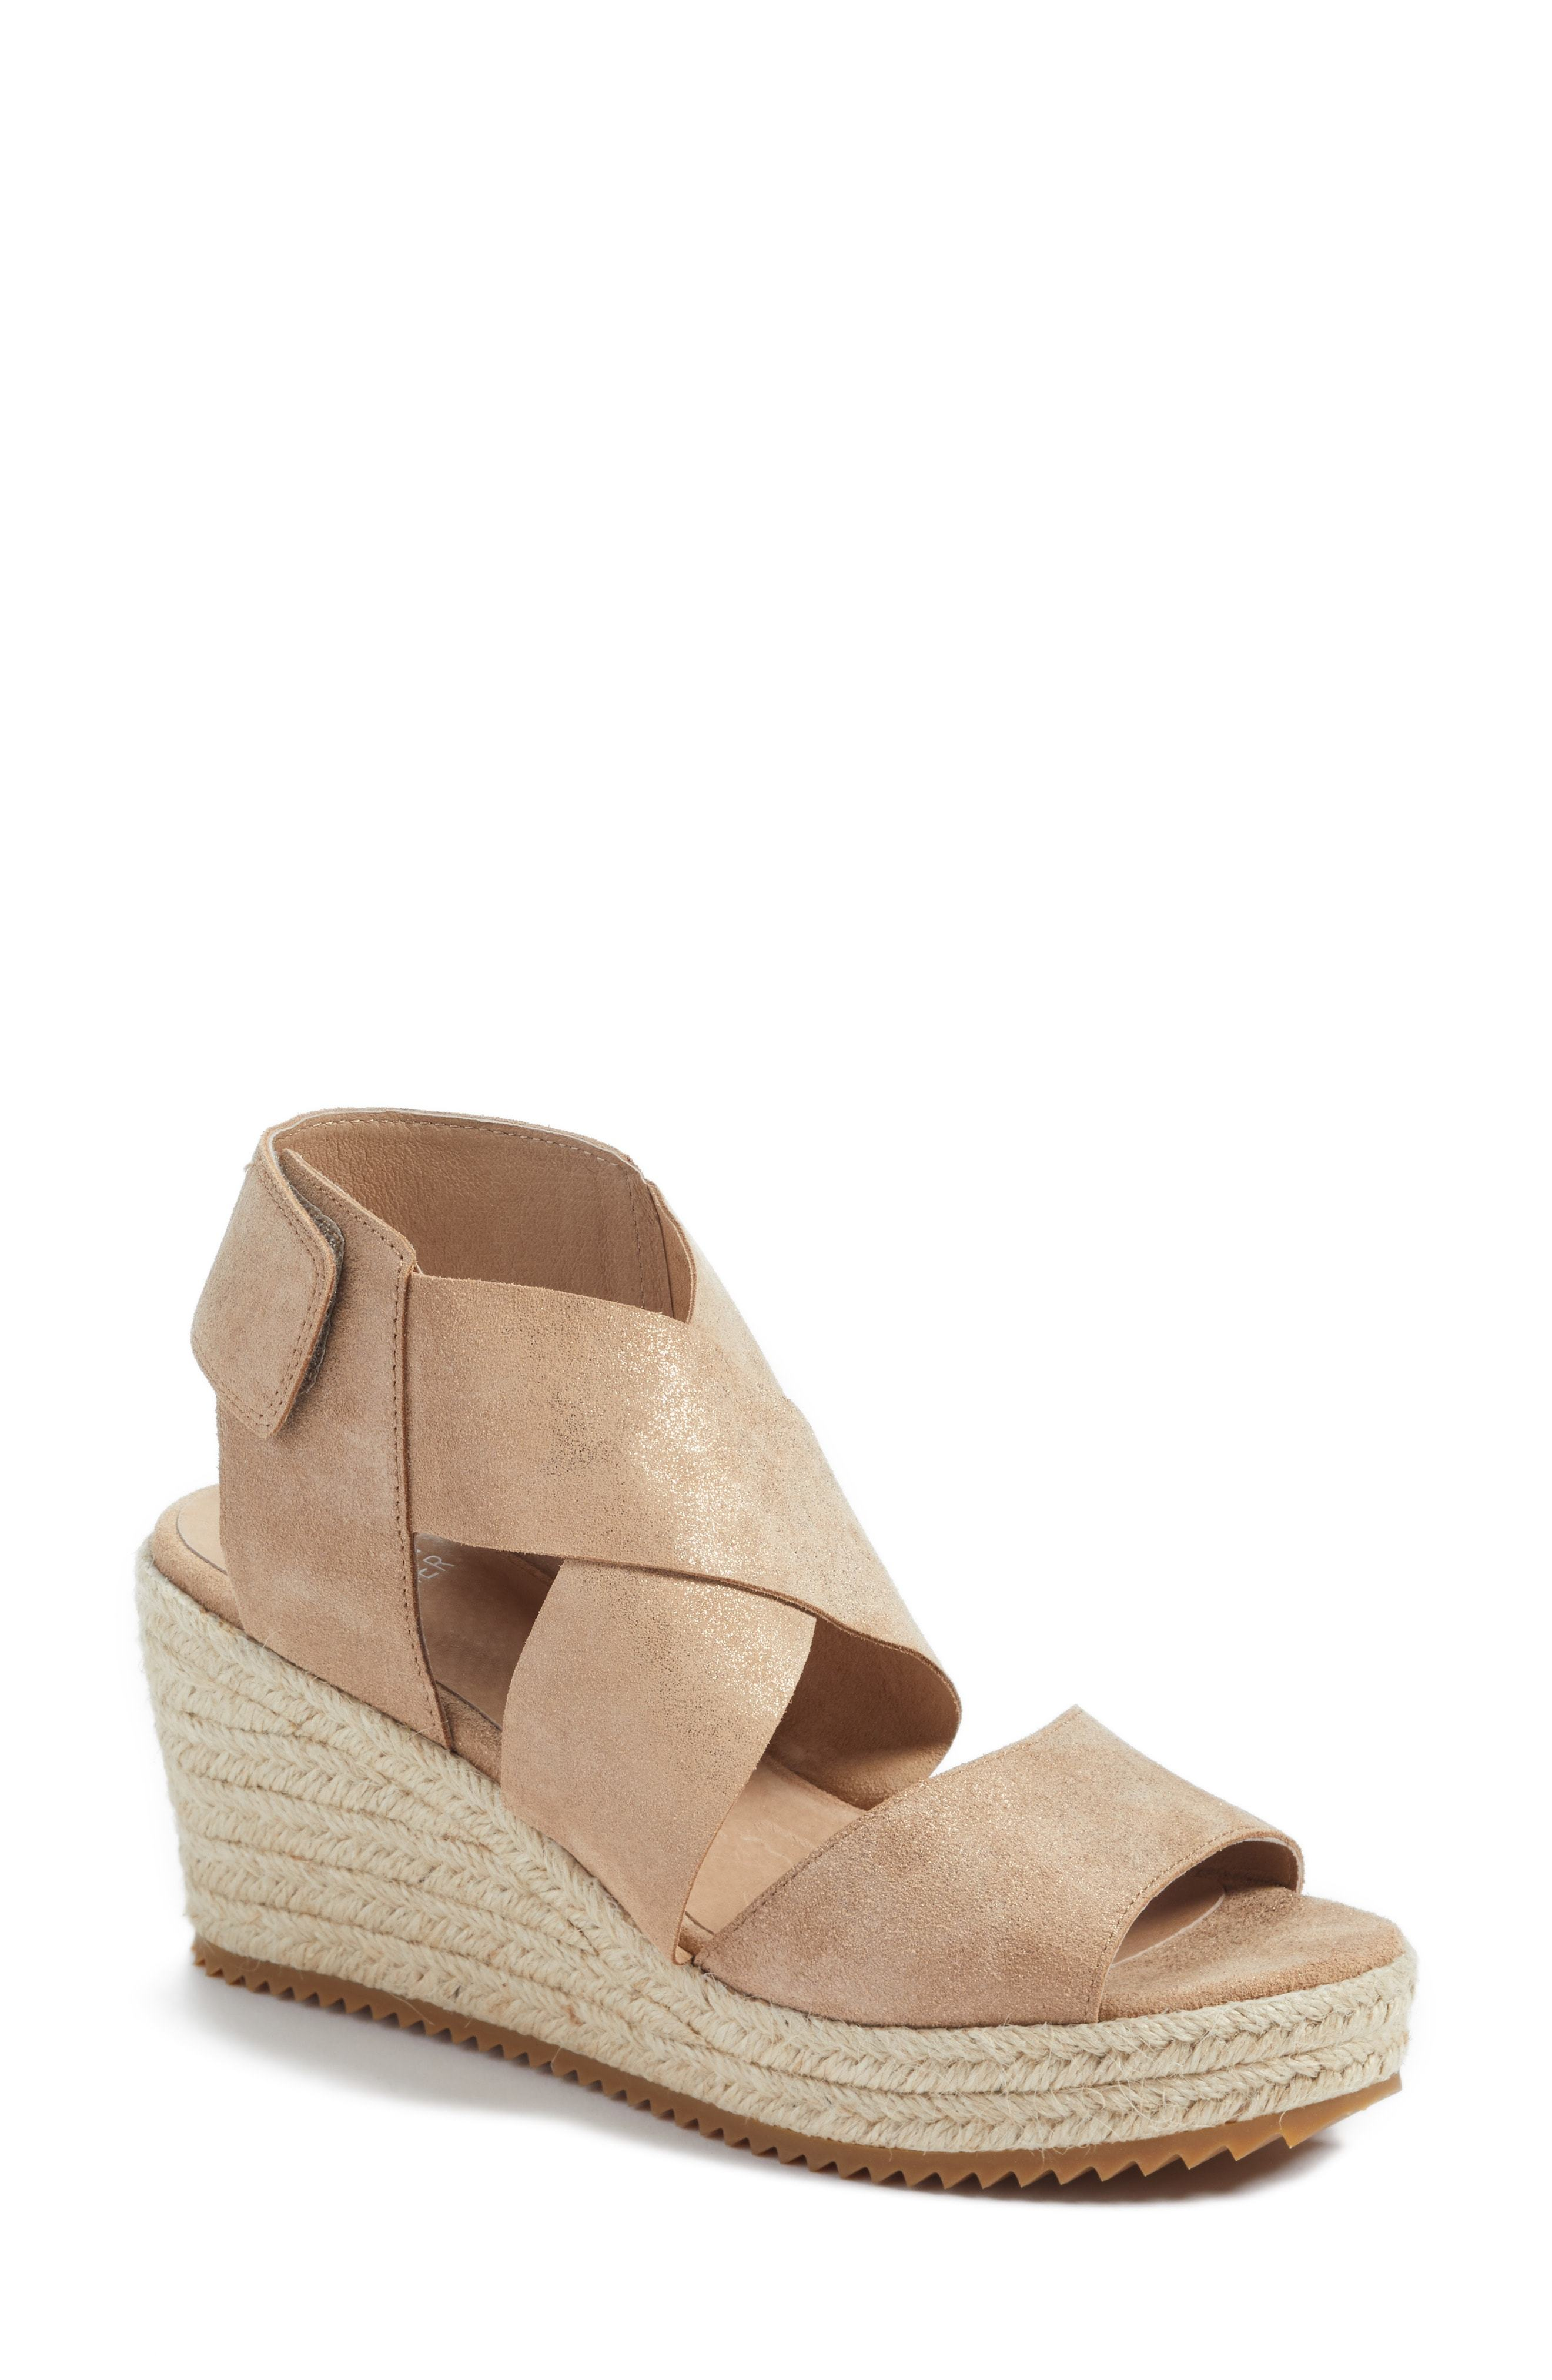 26aacab1b2e Willow Espadrille Wedge Sandal